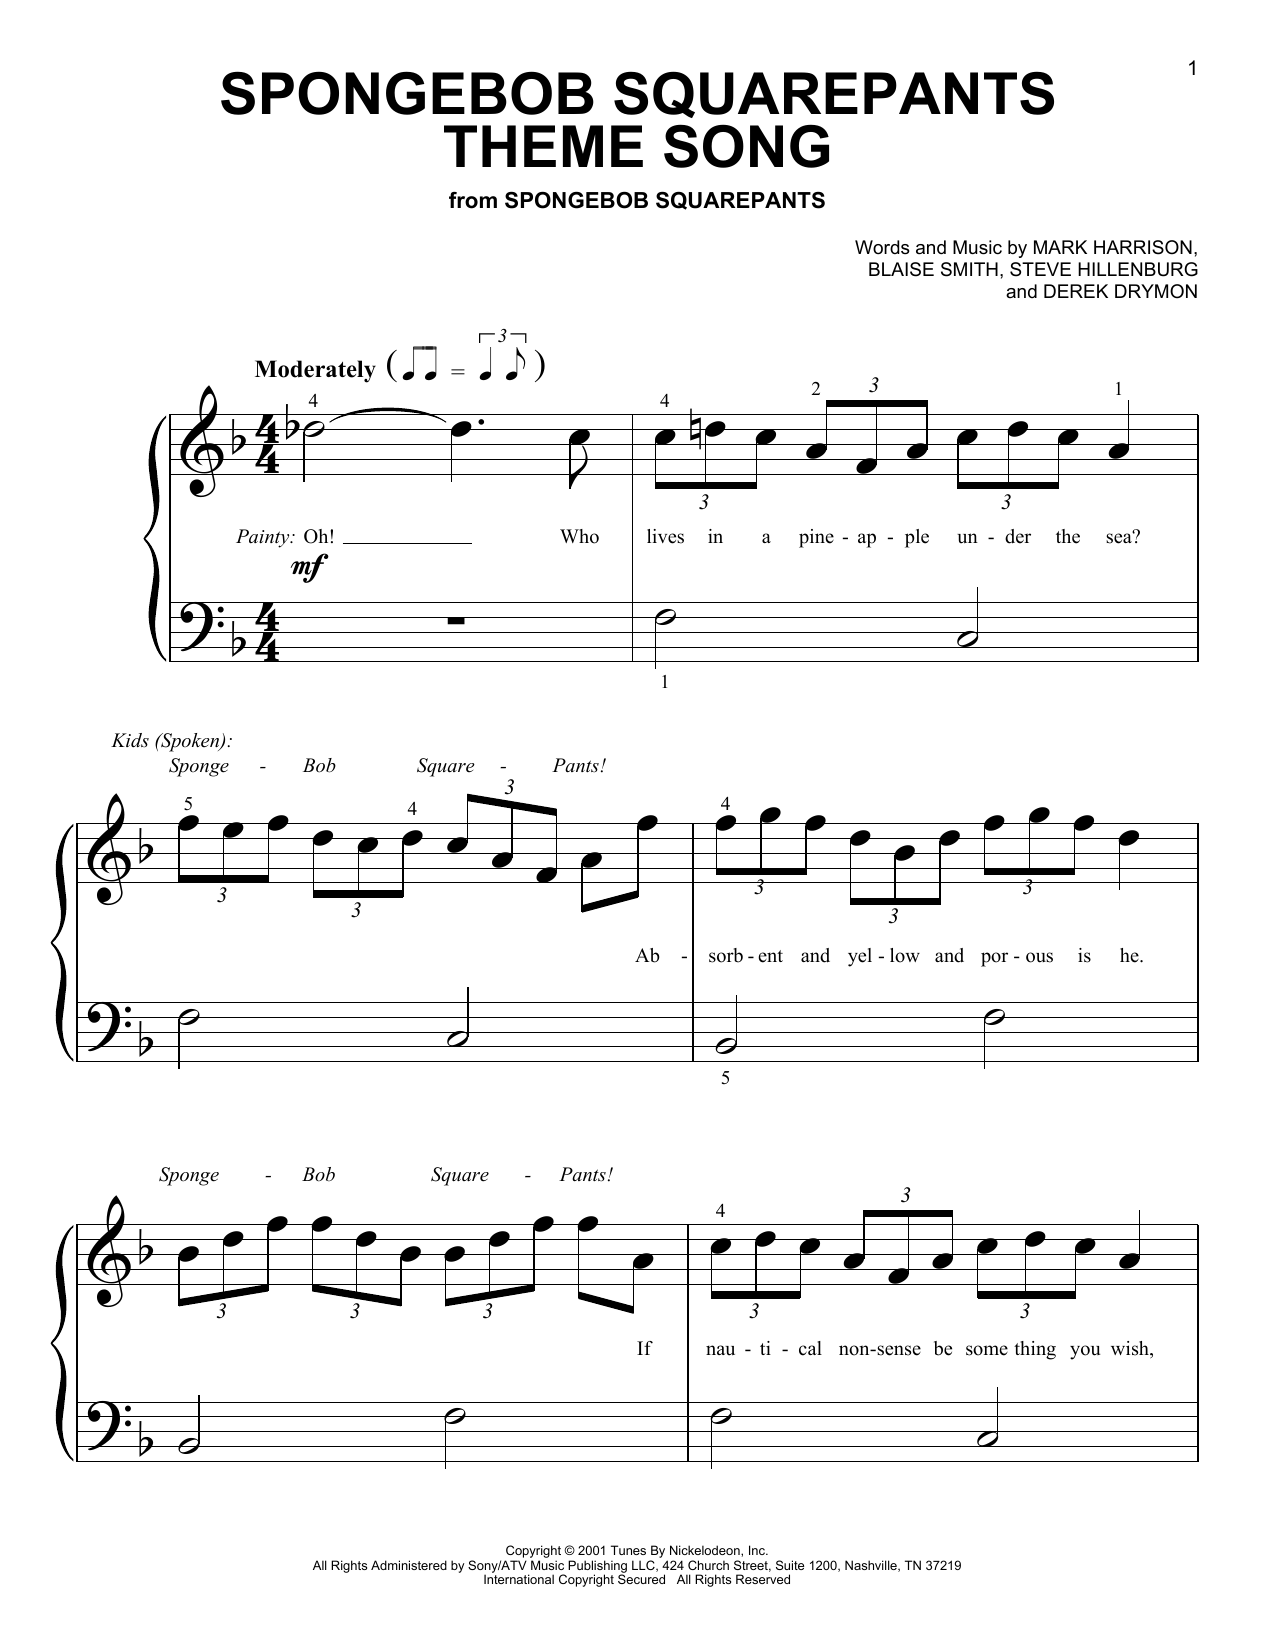 Spongebob squarepants theme song sheet music direct for Classic house chords